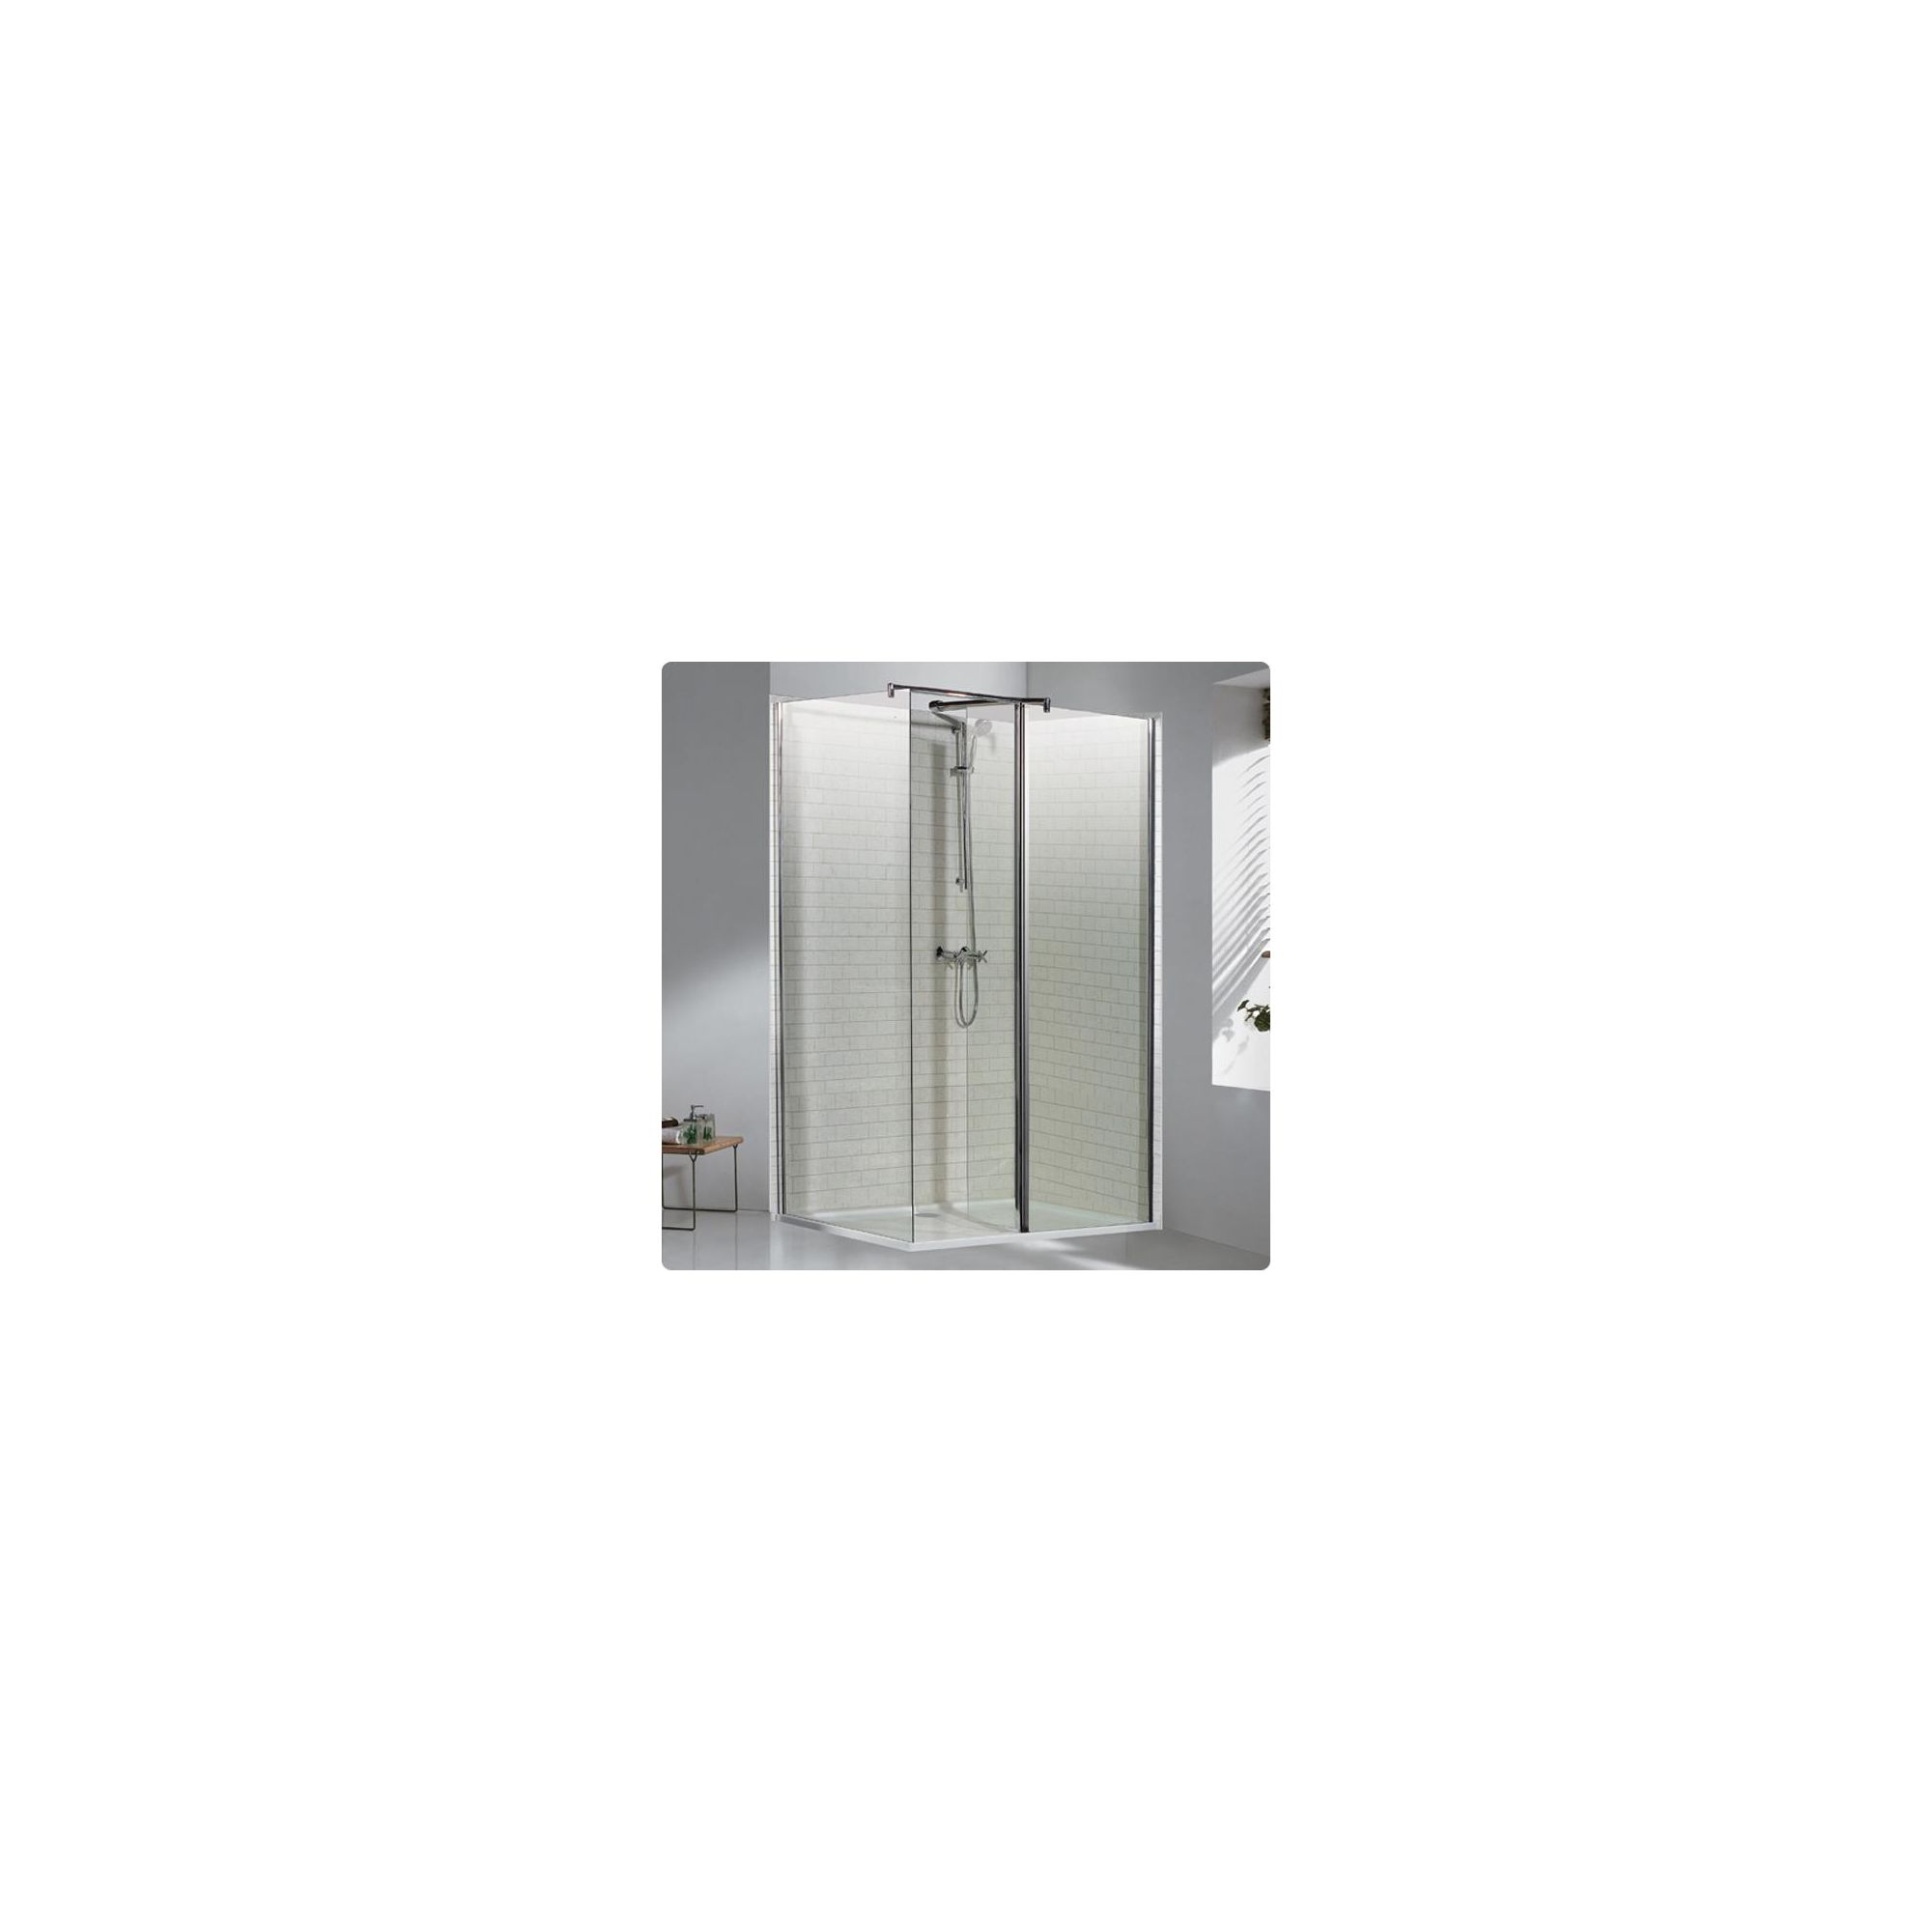 Duchy Choice Silver Walk-In Shower Enclosure 1200mm x 700mm (Complete with Tray), 6mm Glass at Tescos Direct